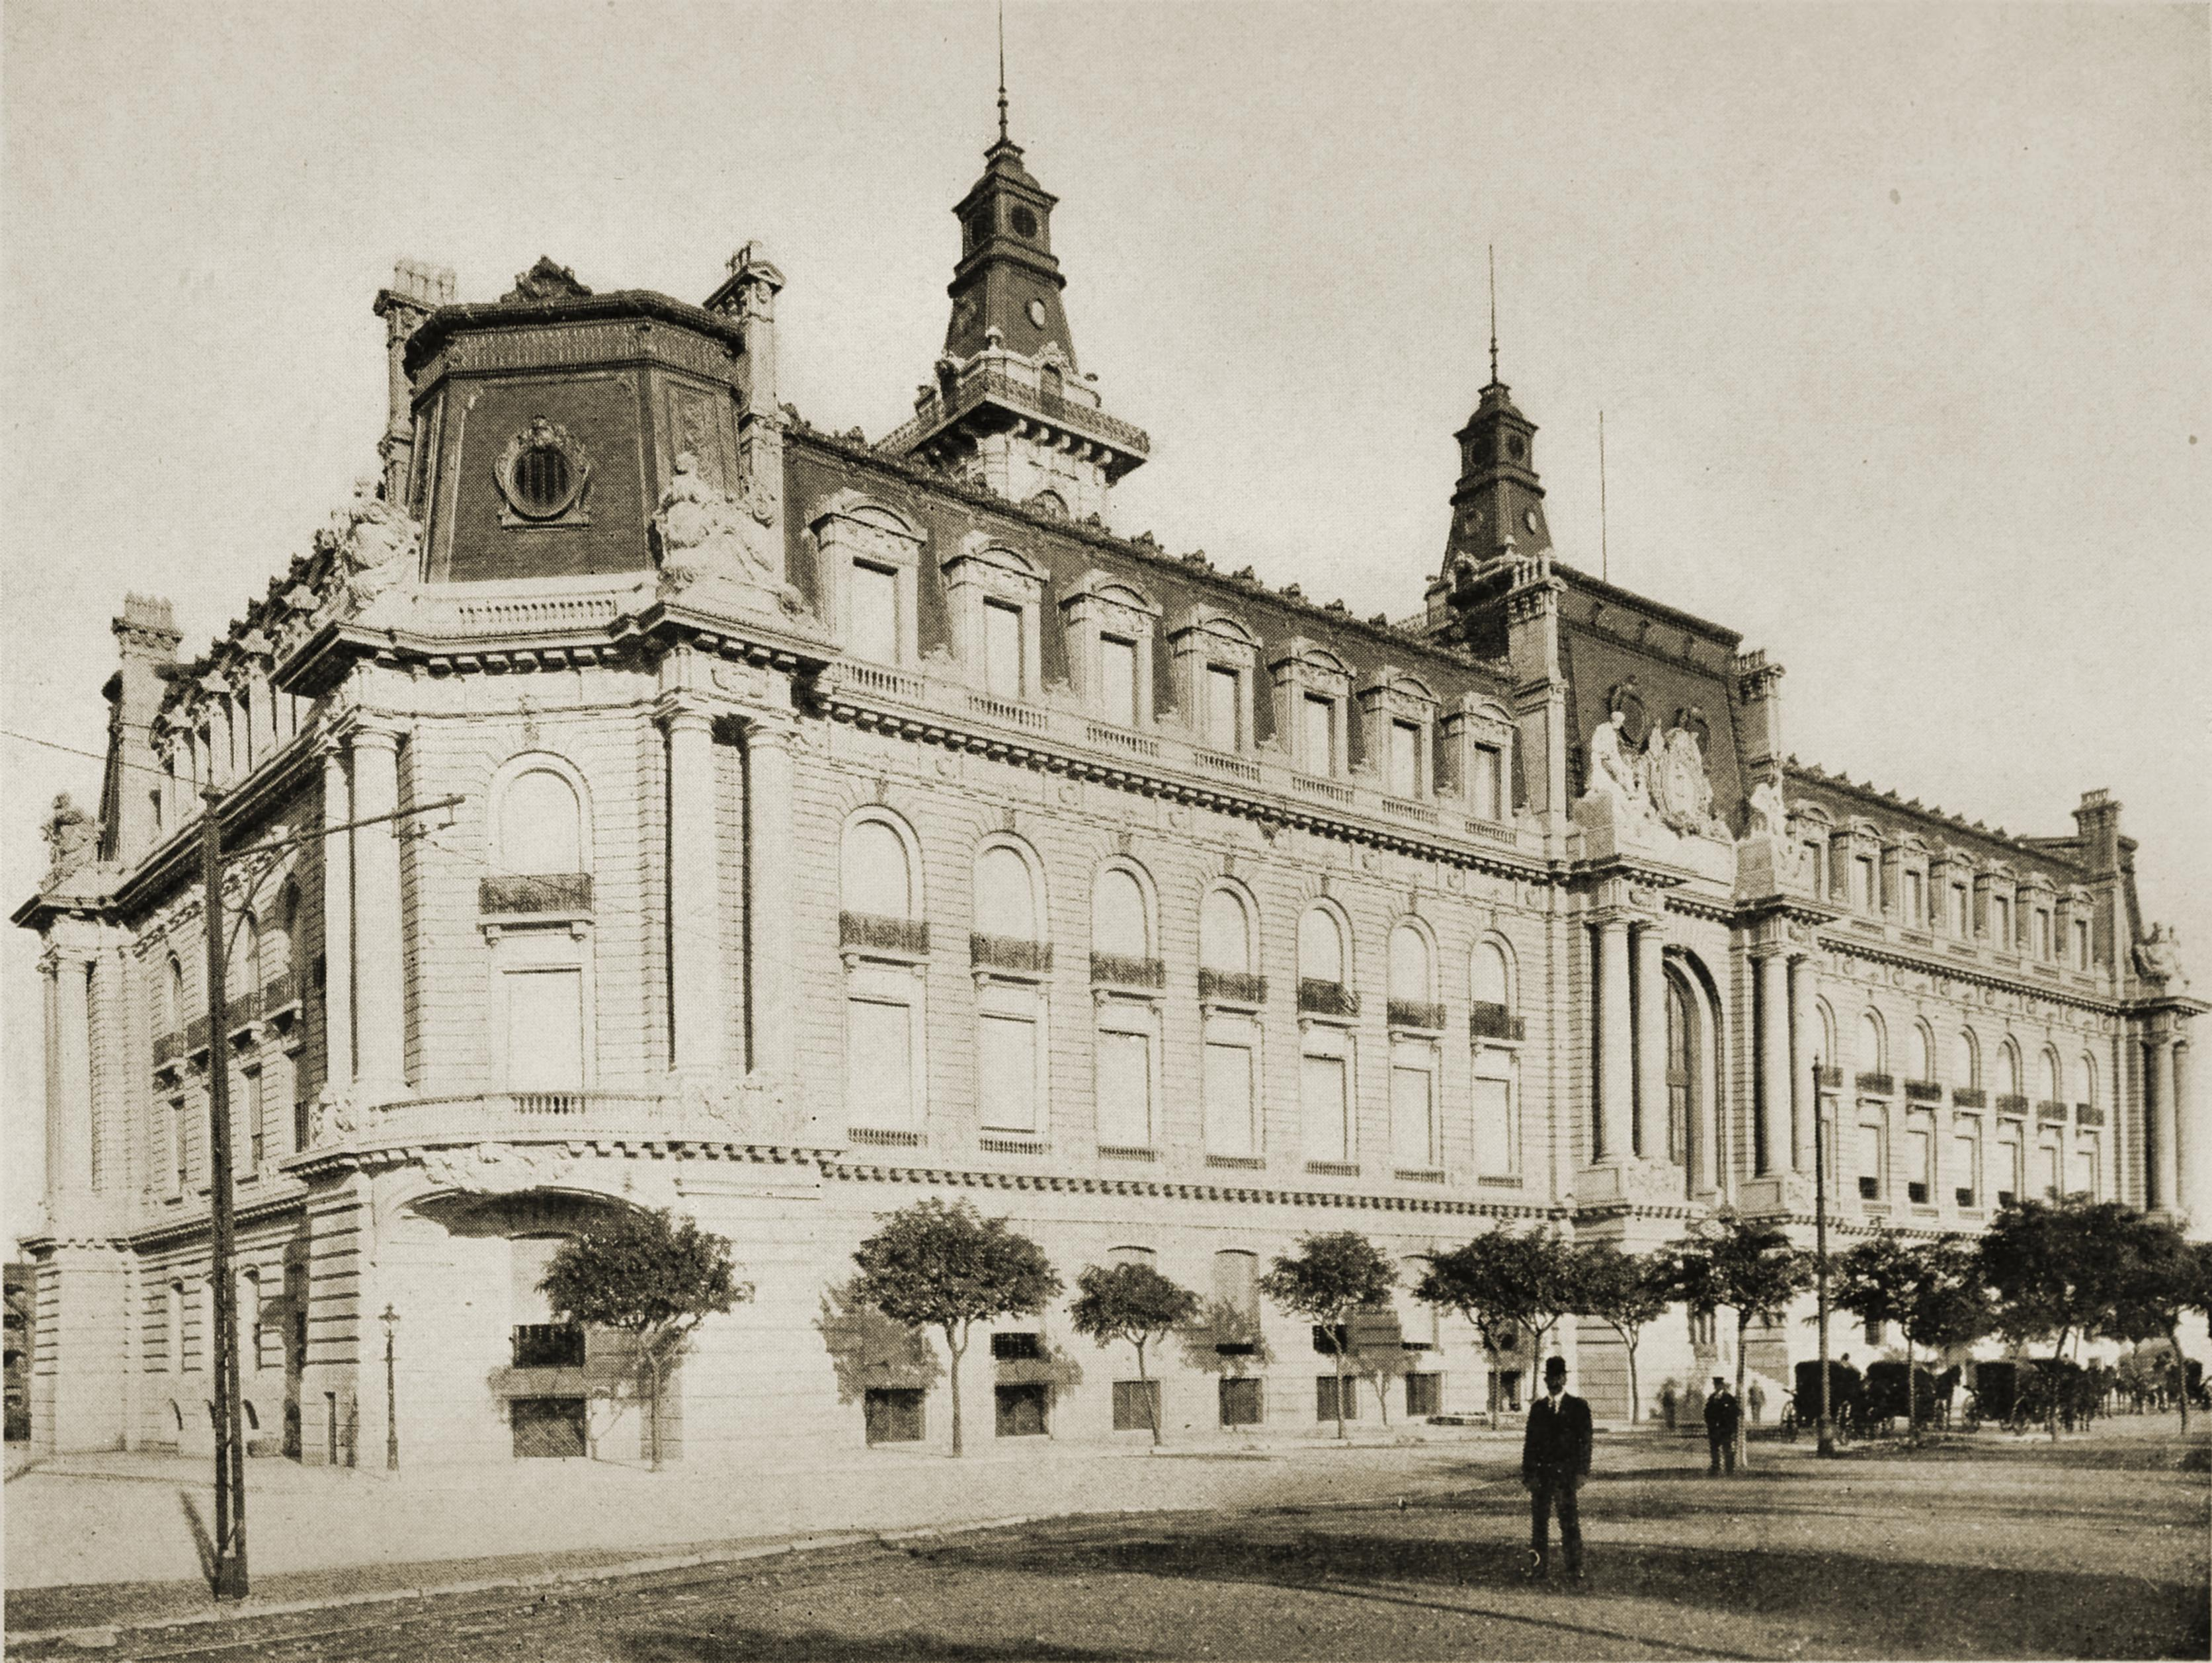 Aduana (Custom House), Buenos Aires, Argentina about 1917